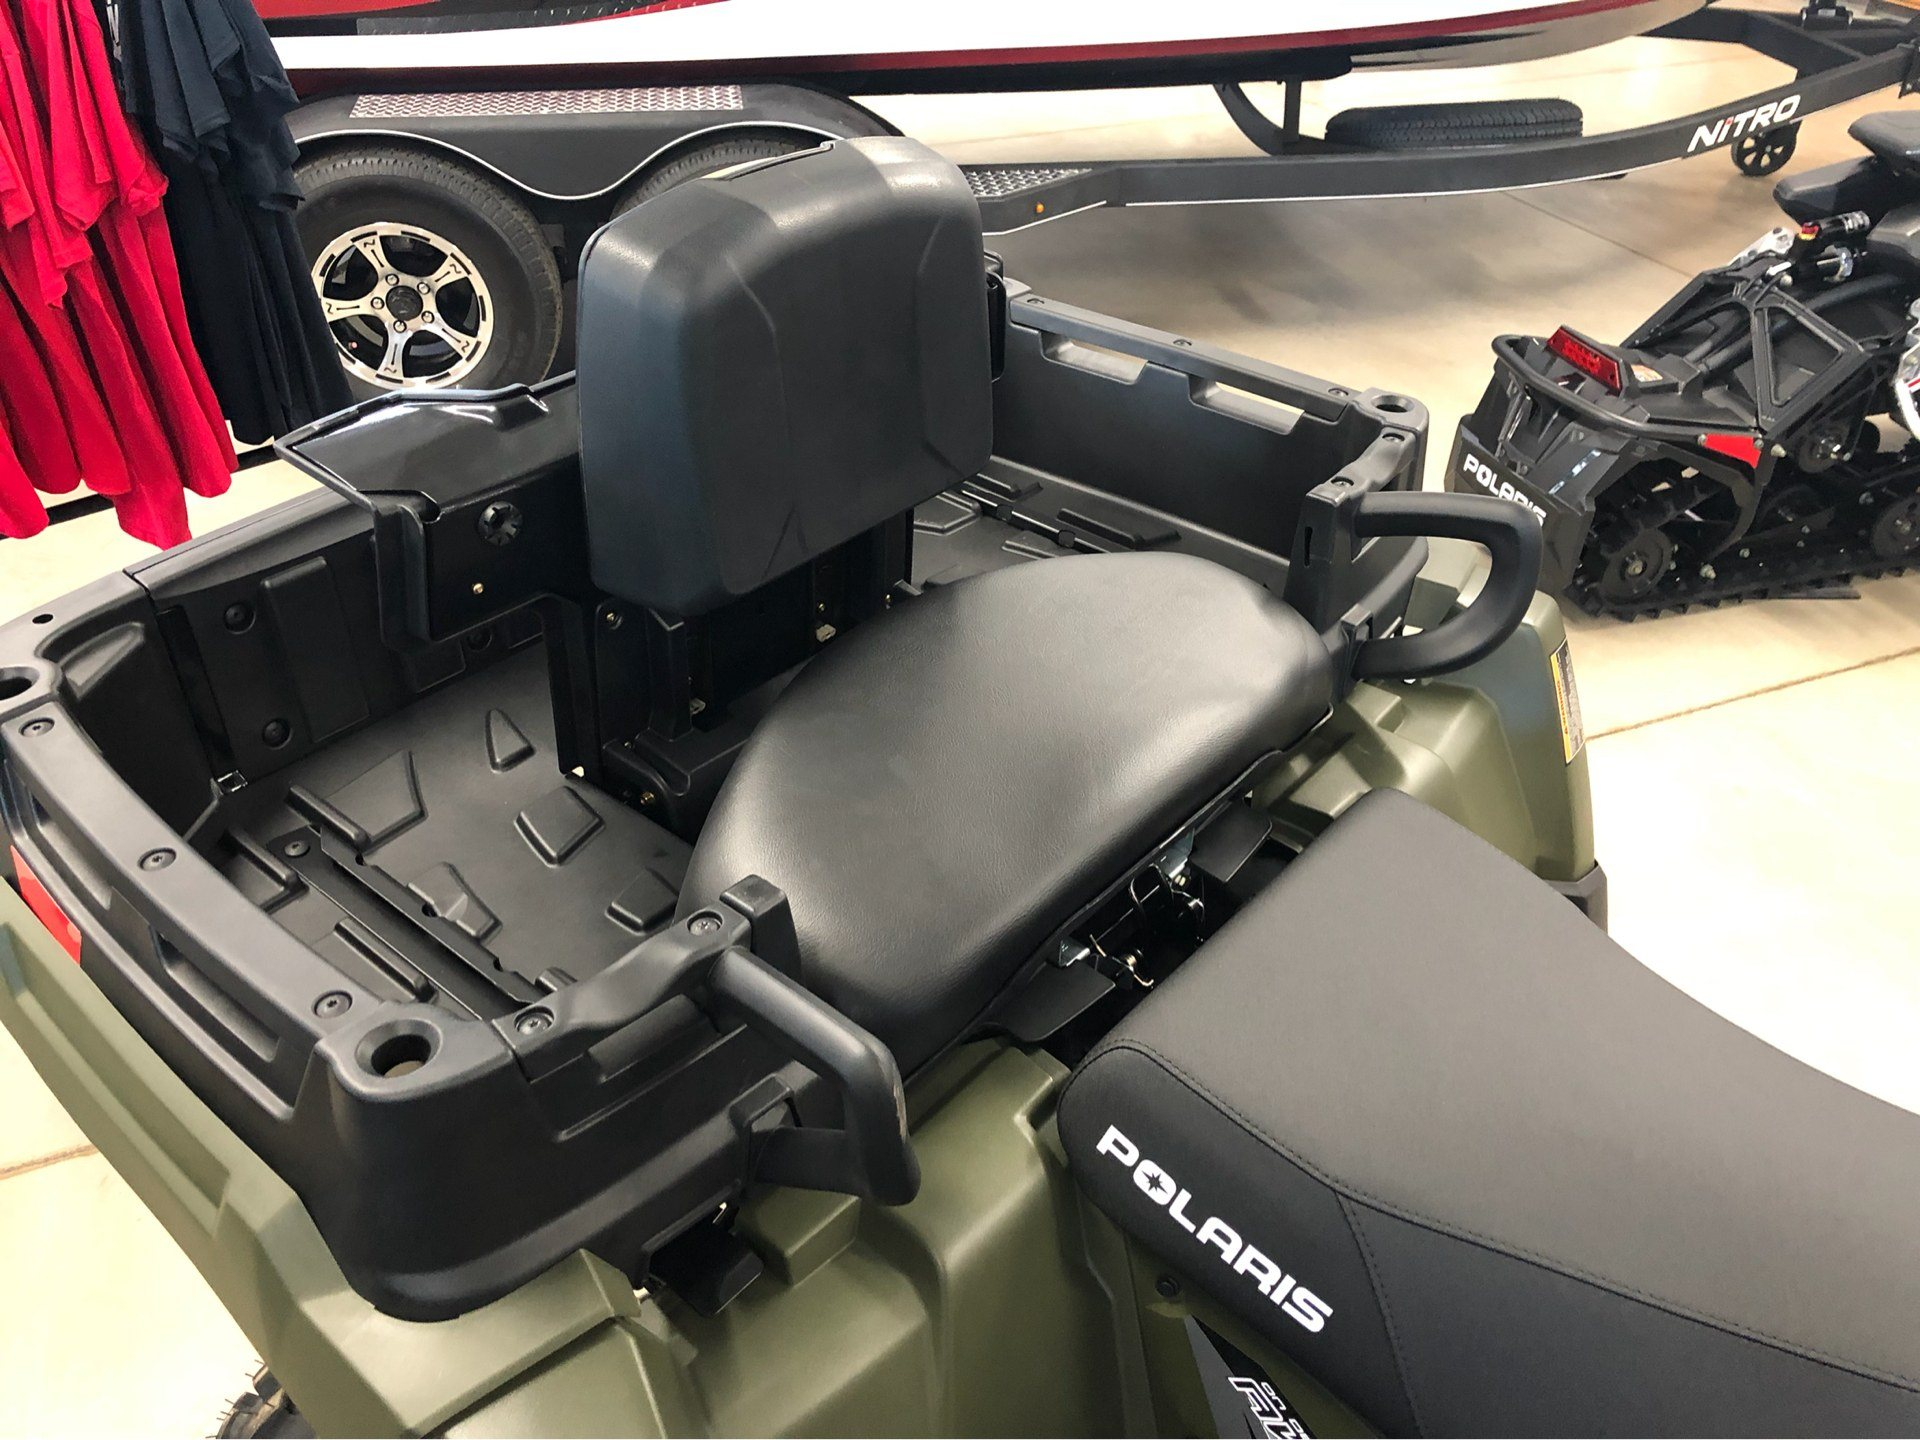 2019 Polaris Sportsman X2 570 in Appleton, Wisconsin - Photo 2